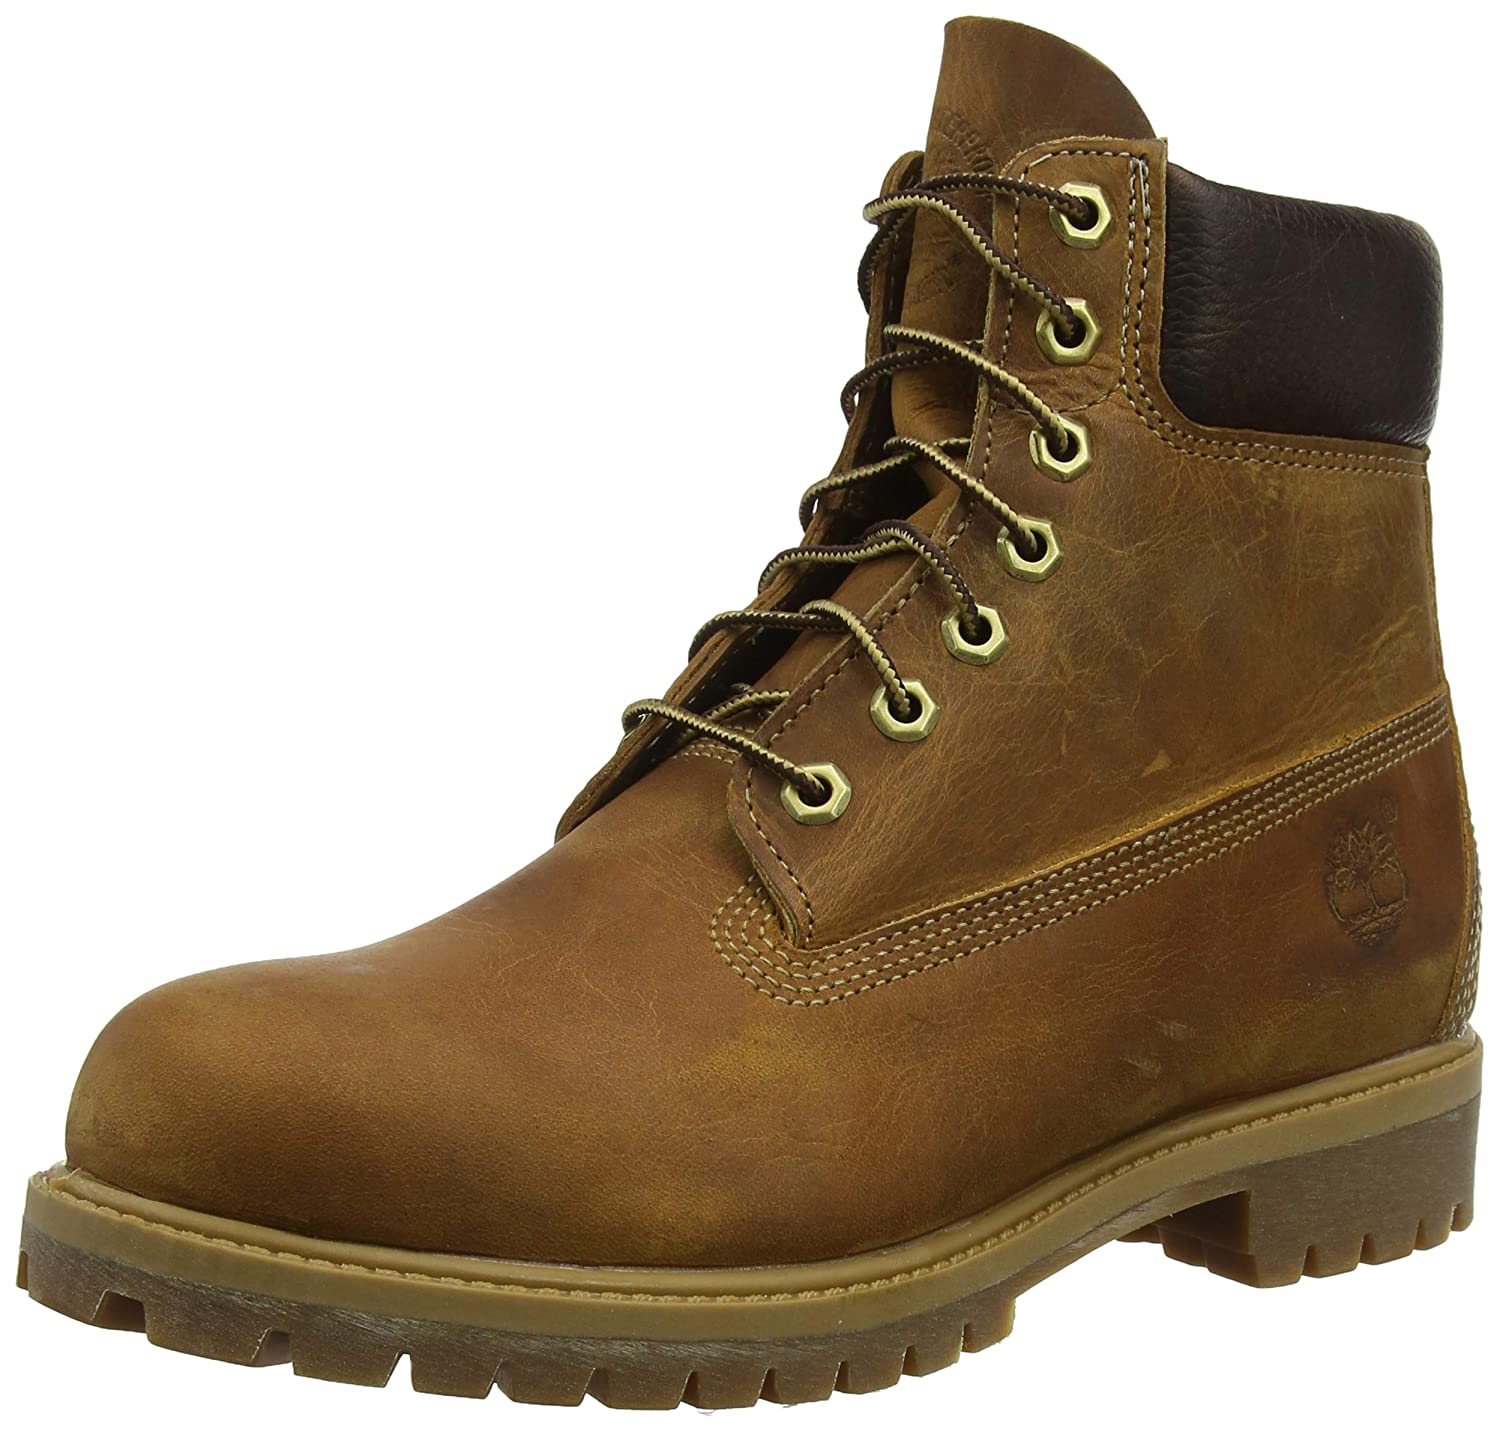 Timberland Herren Heritage 6 Inch Premium Stiefel, Braun (Brown Burnished Full Grain), 50 EU